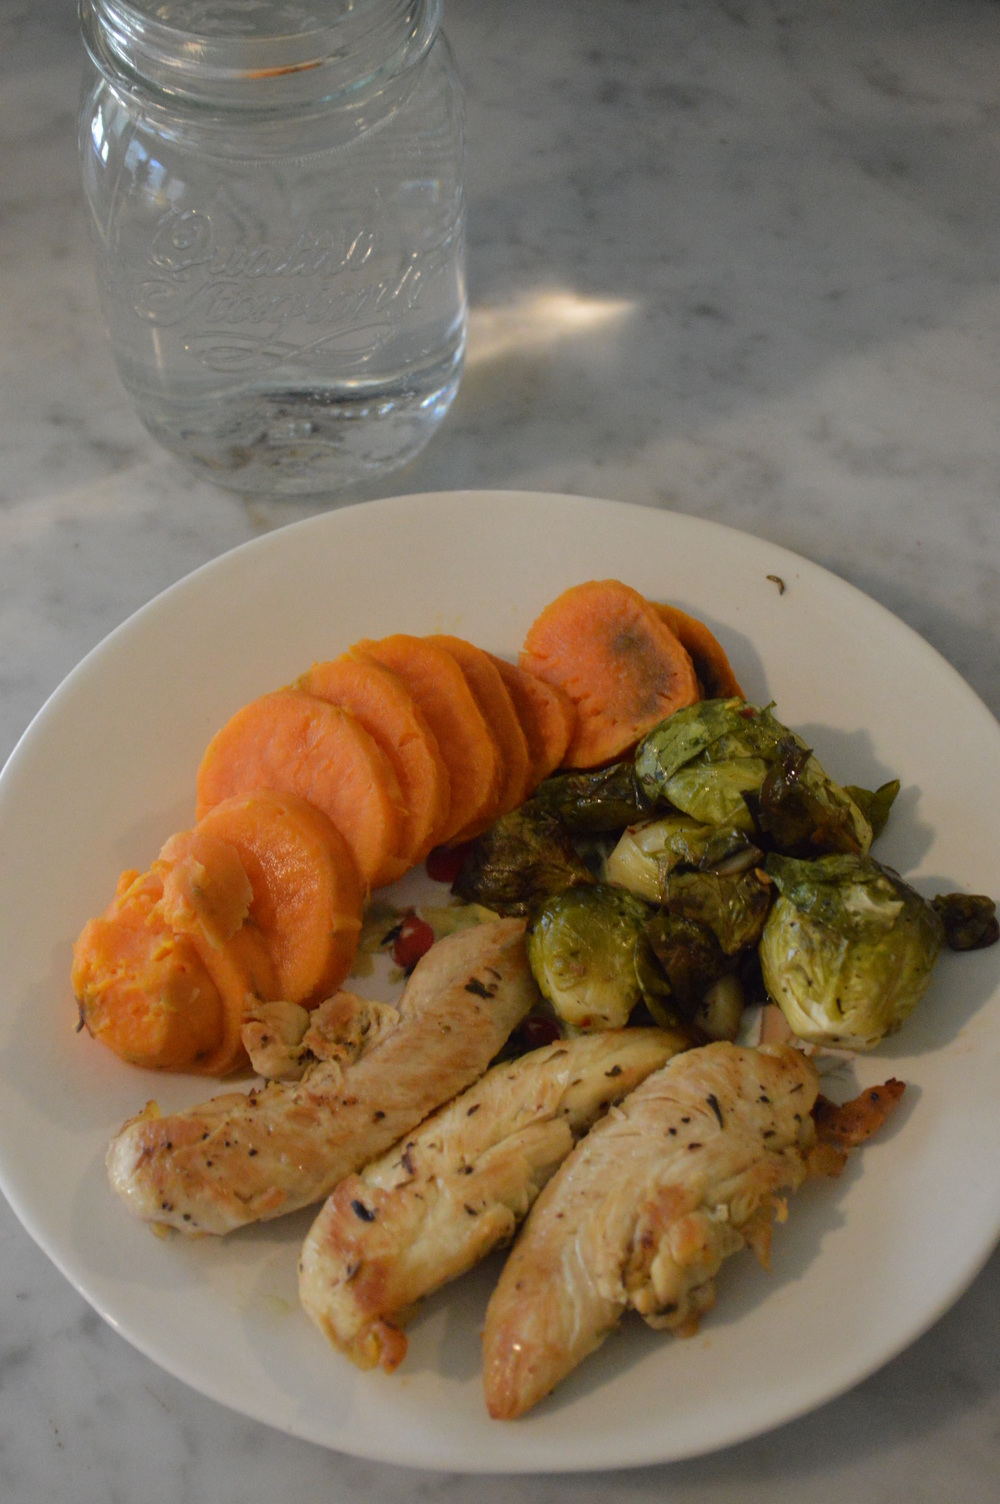 Chicken, Sweet Potato, Brussel Sprouts